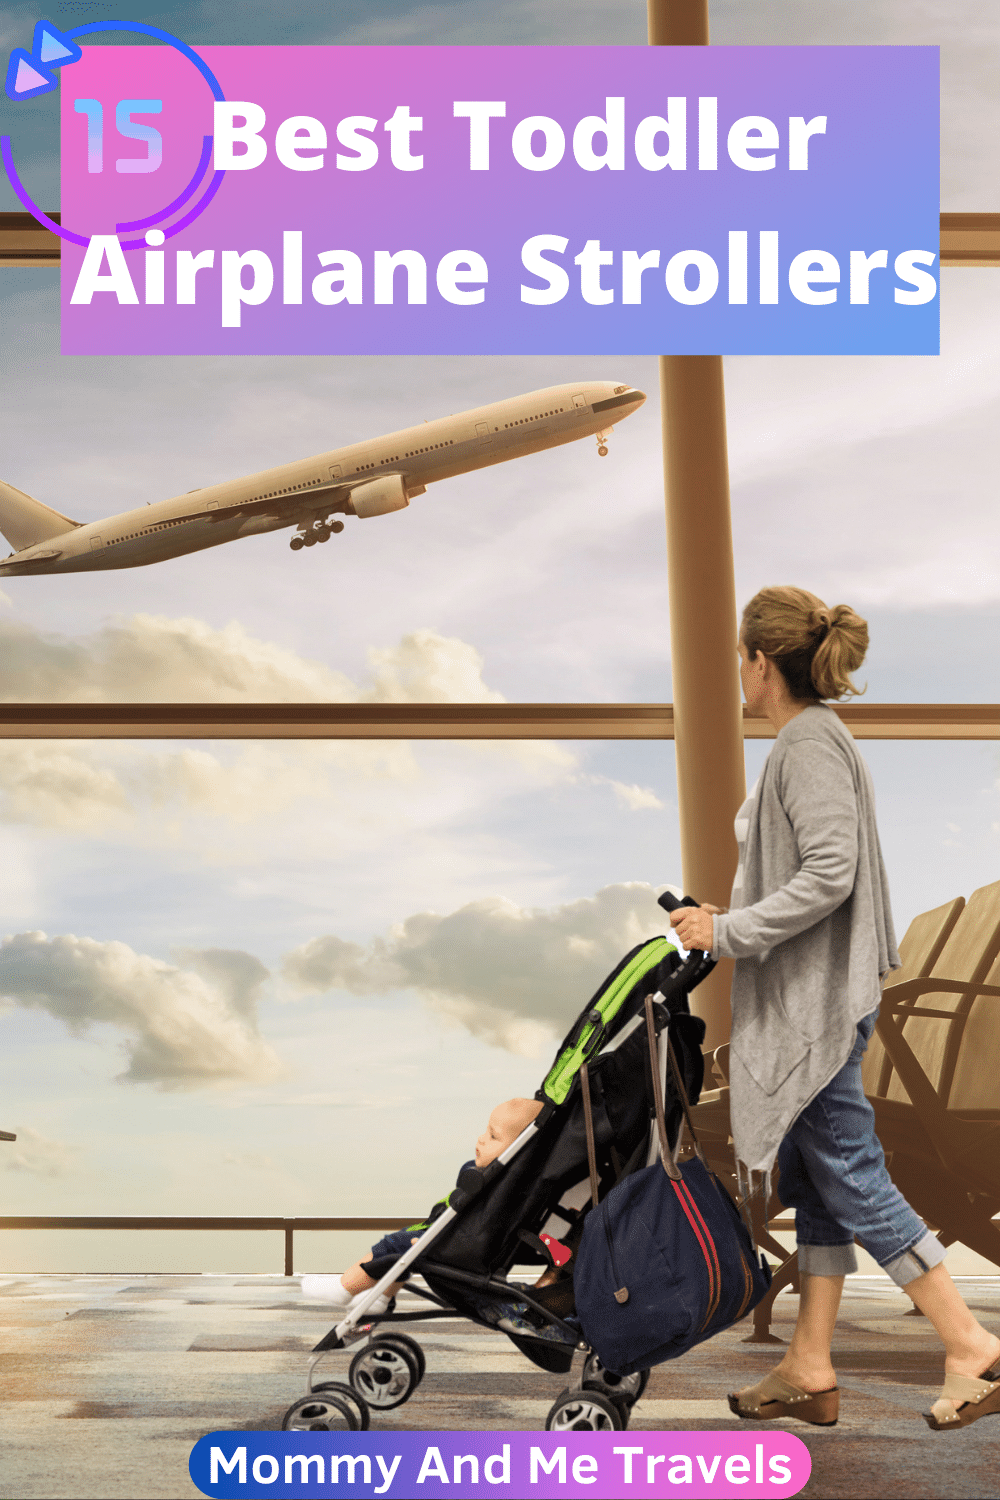 15 Best Airplane Stroller For Toddlers - Lightweight, Compact, Portable, And Fit In Airplane Overhead Bin